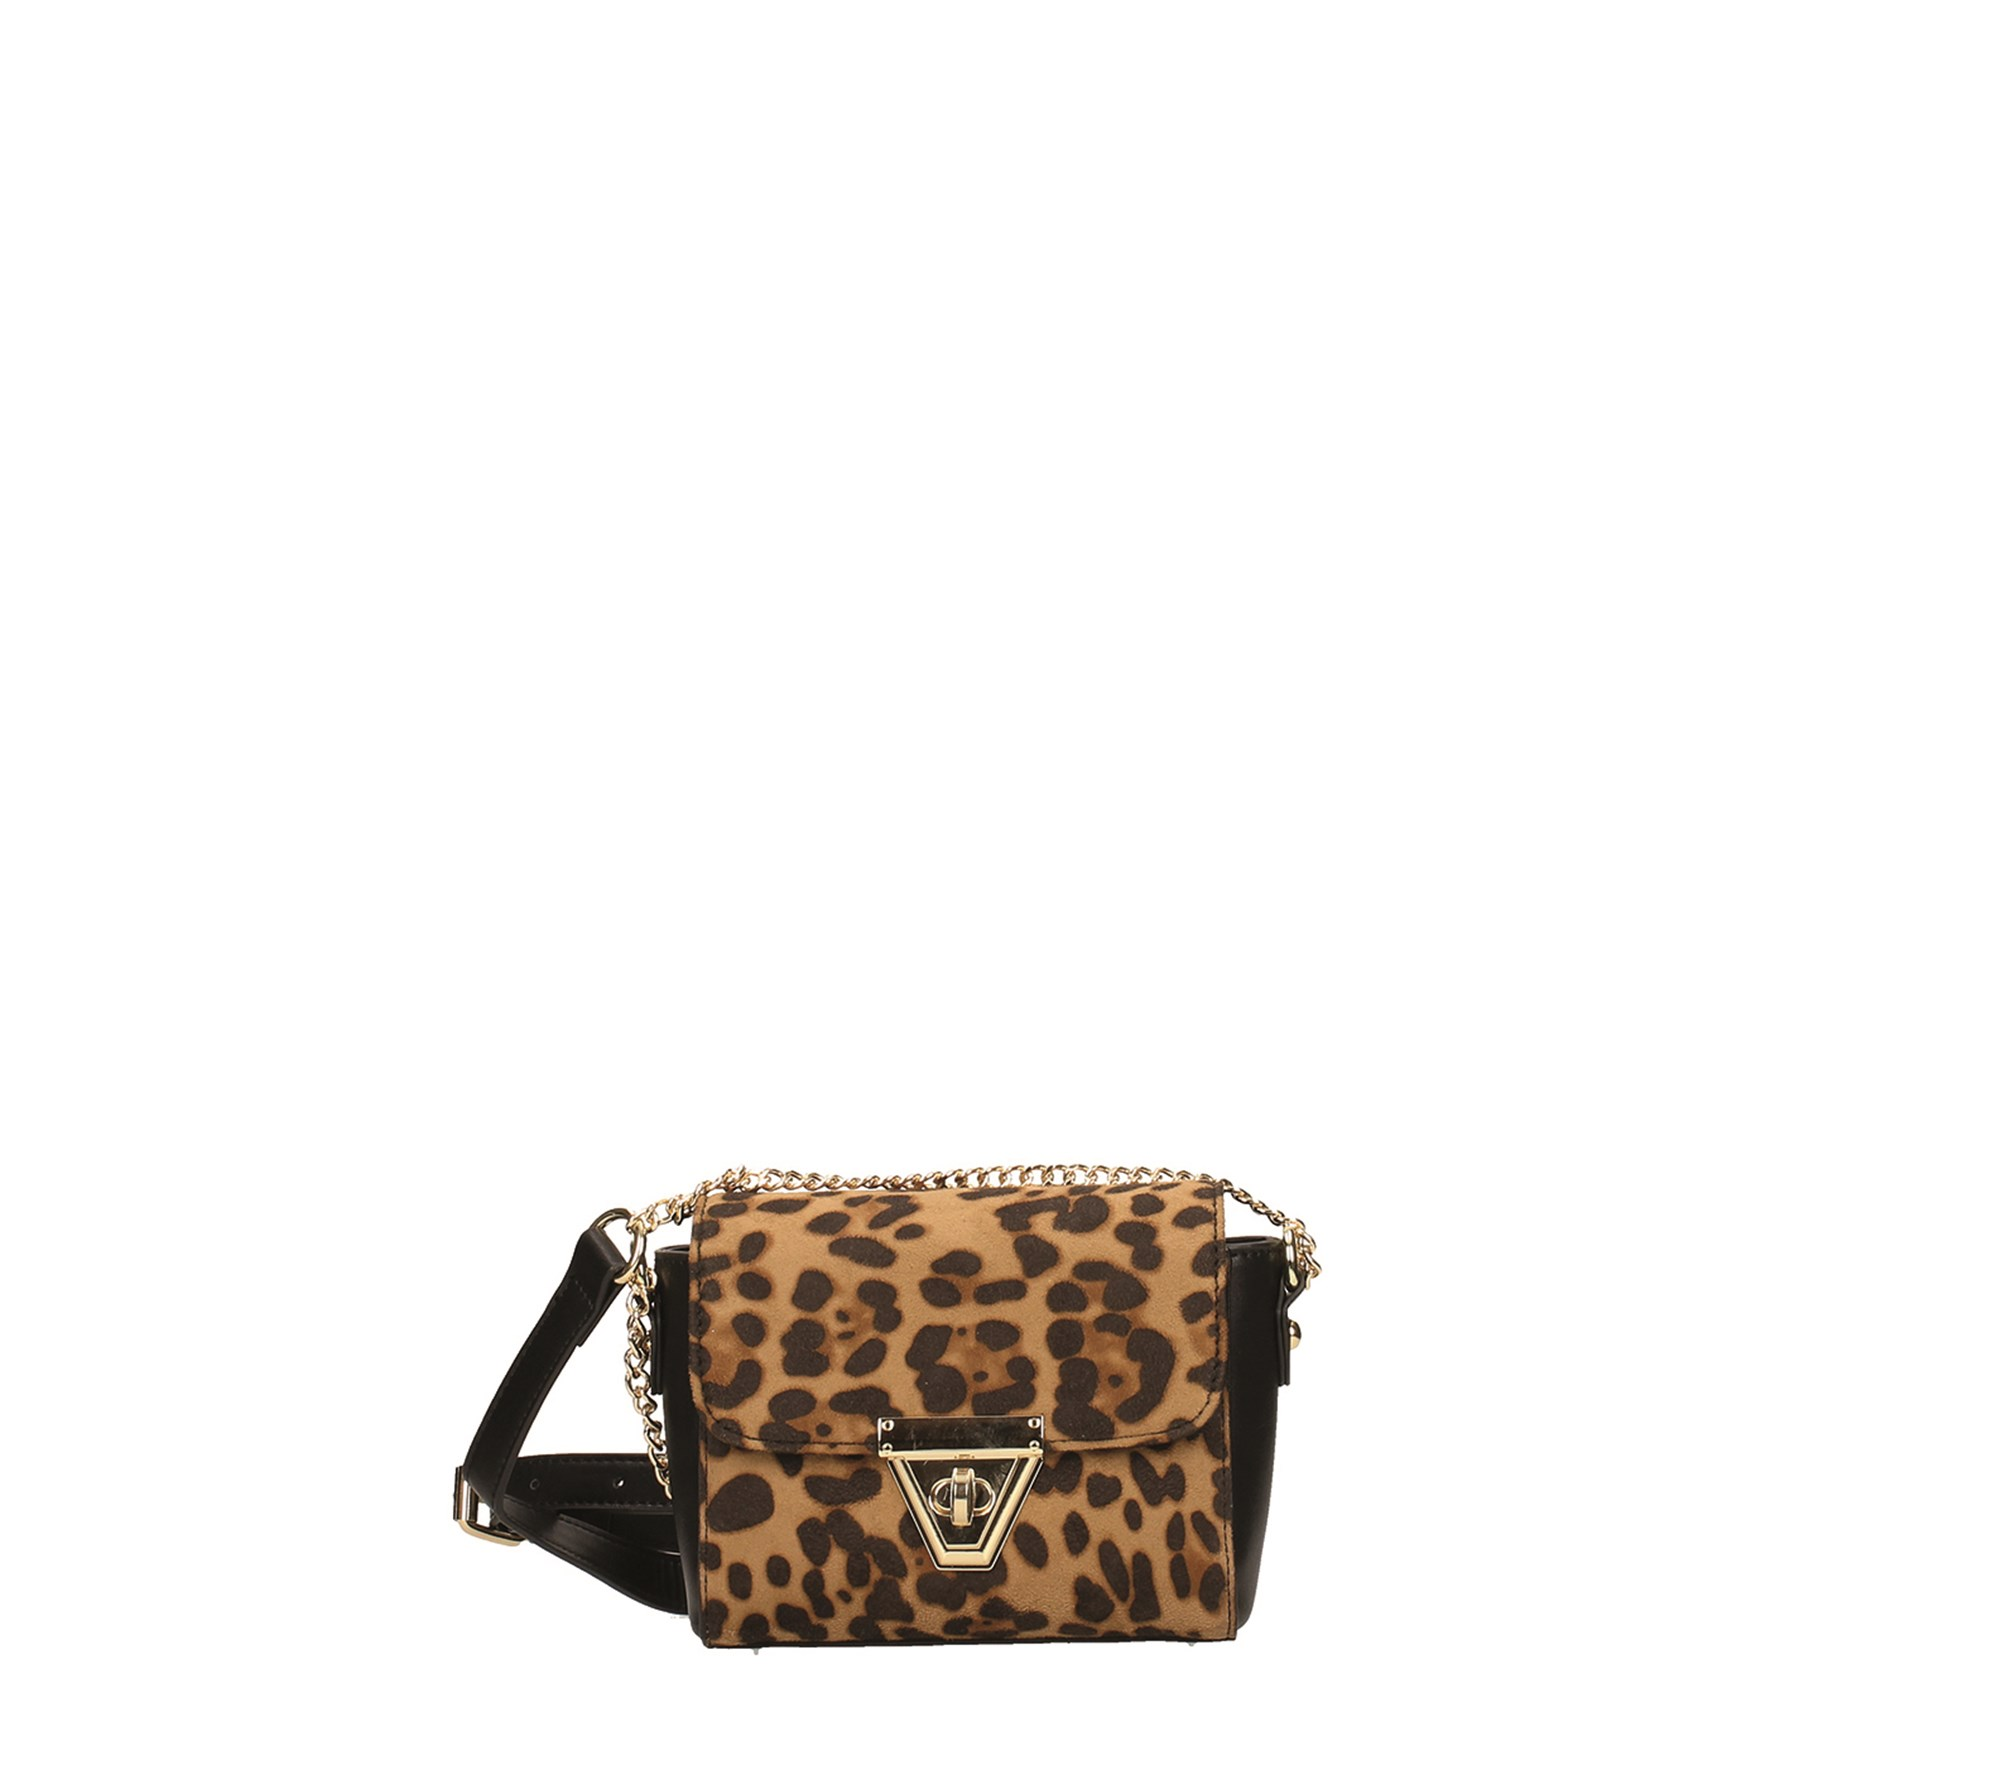 Tata Italia Accessories Woman Bags CUTE CUBS